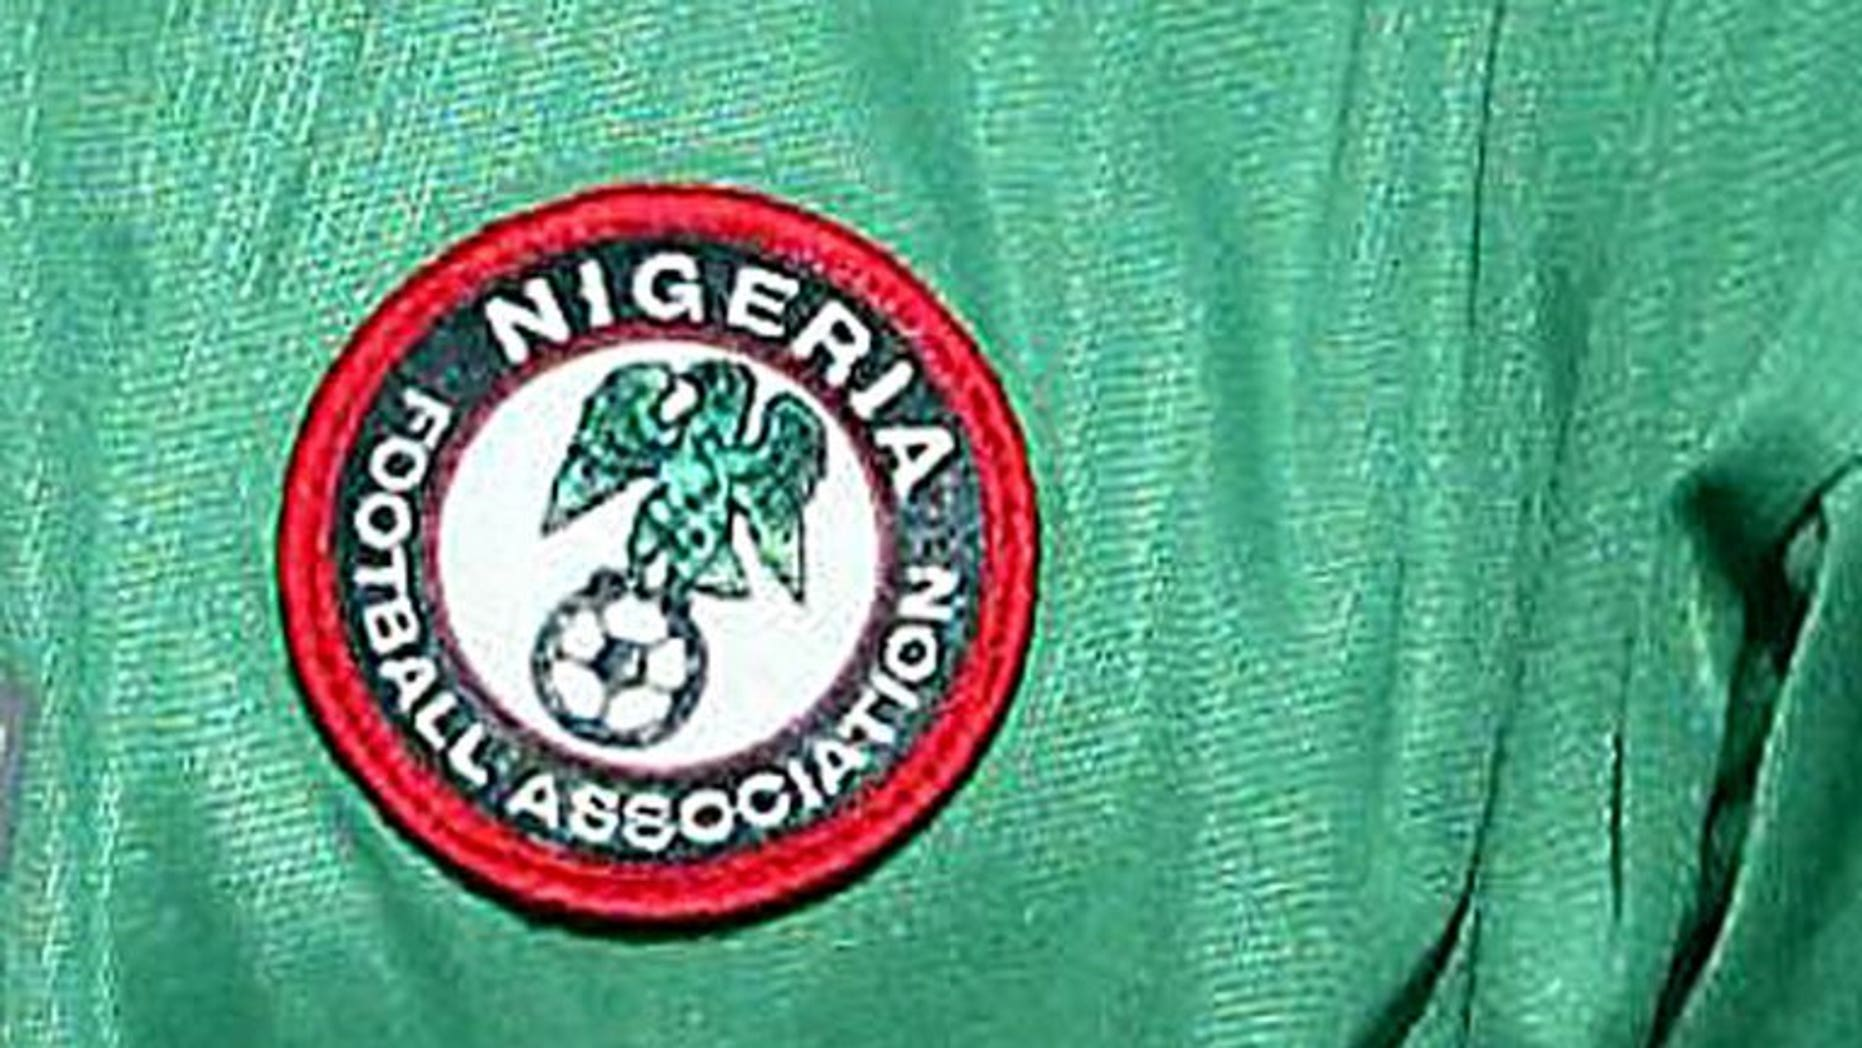 """Nigeria's top football authority has suspended four teams who reported """"mind-boggling"""" results from their play-offs matches, describing the scores of 79-0 and 67-0 as """"scandalous"""" tallies that must be probed."""